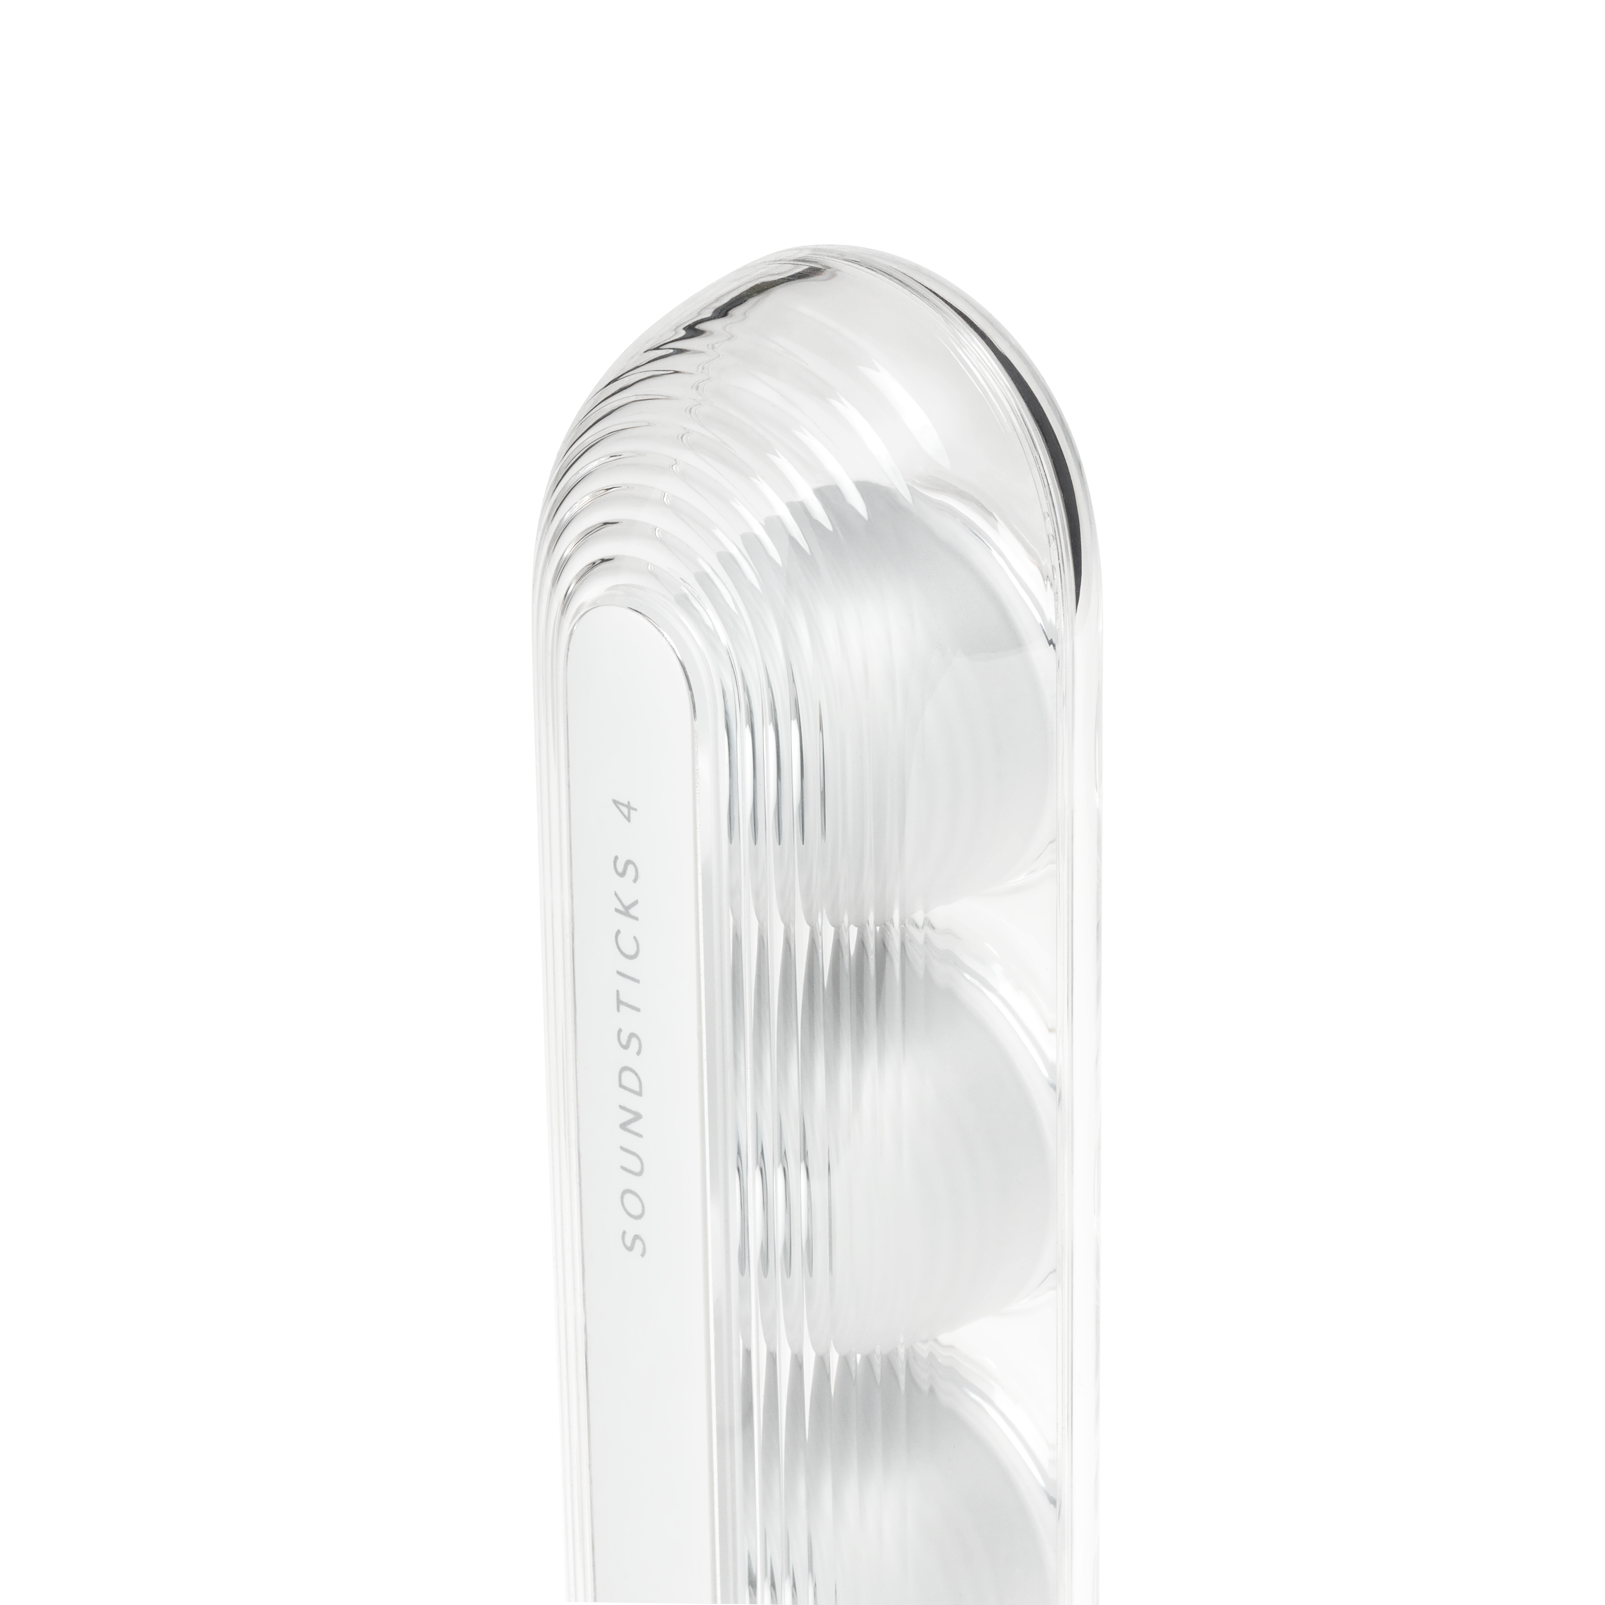 Harman Kardon SoundSticks 4 - White - Bluetooth Speaker System - Detailshot 2